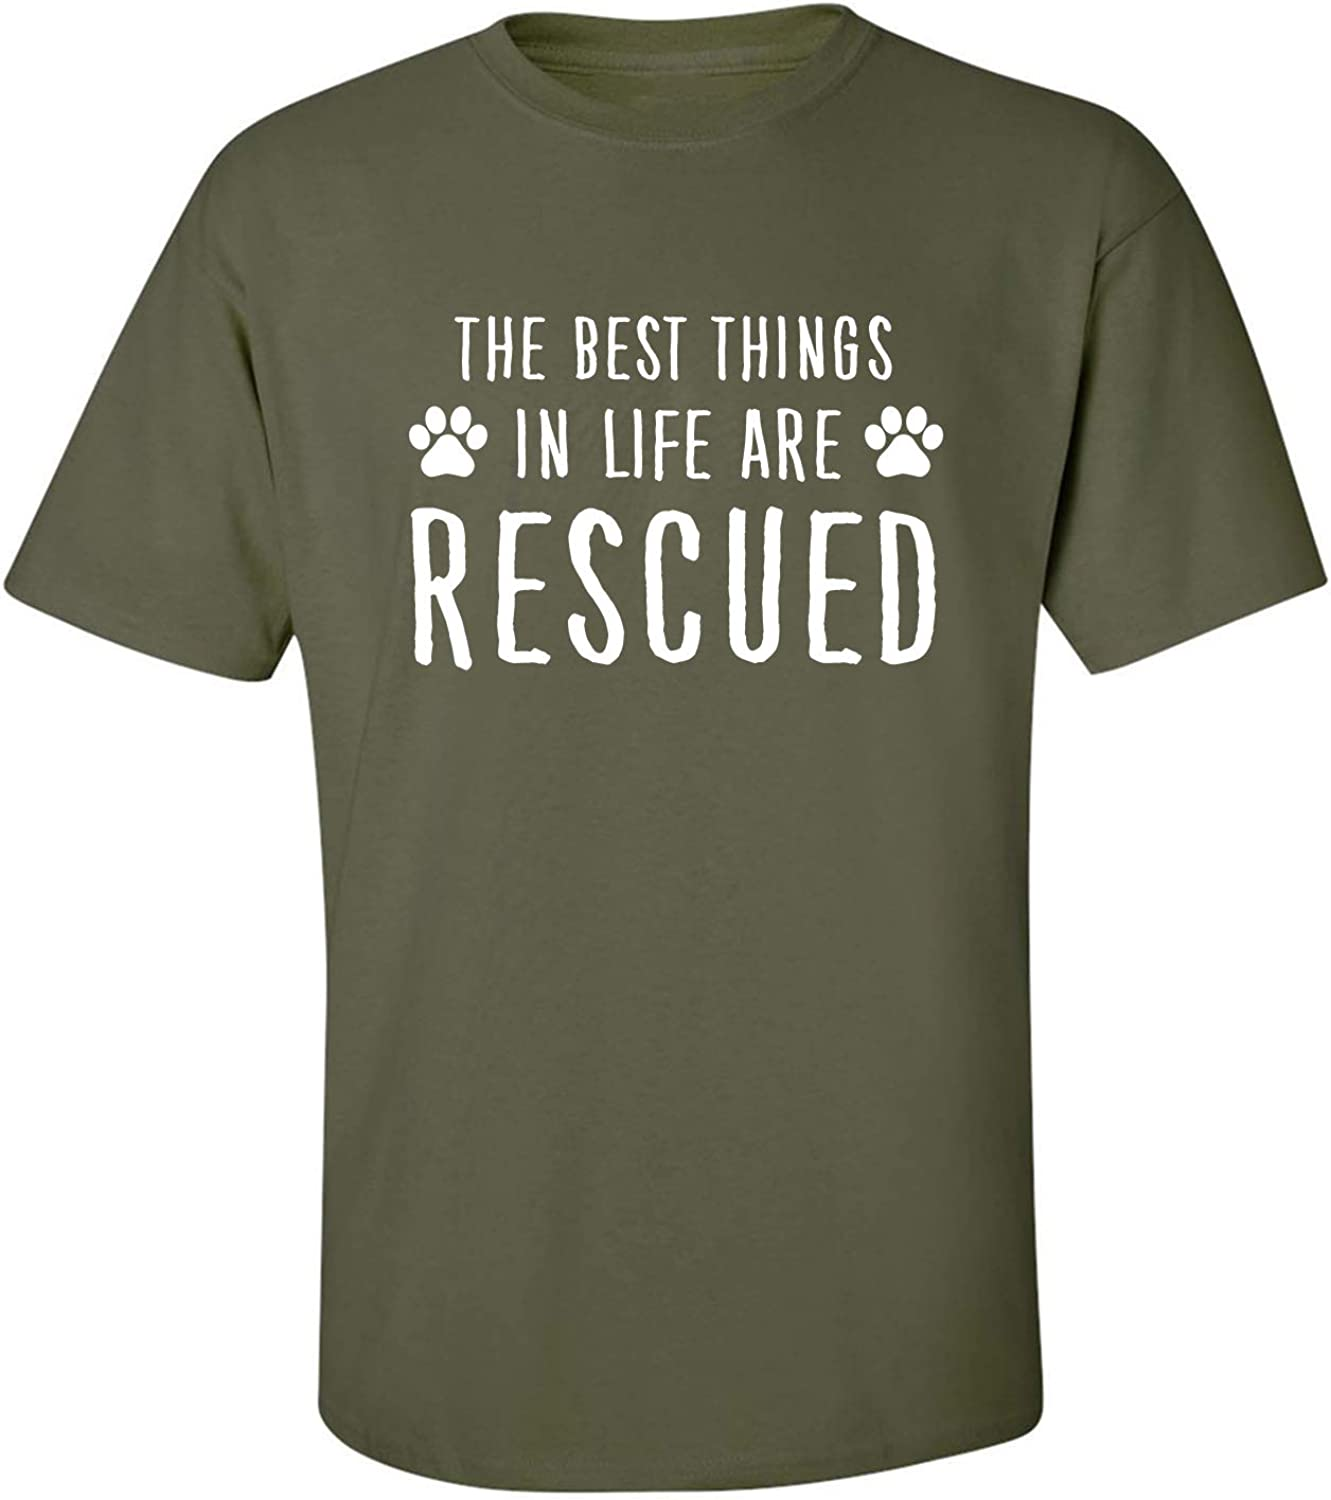 Best Things in Life are Rescued Adult T-Shirt in Military Green - XXX-Large